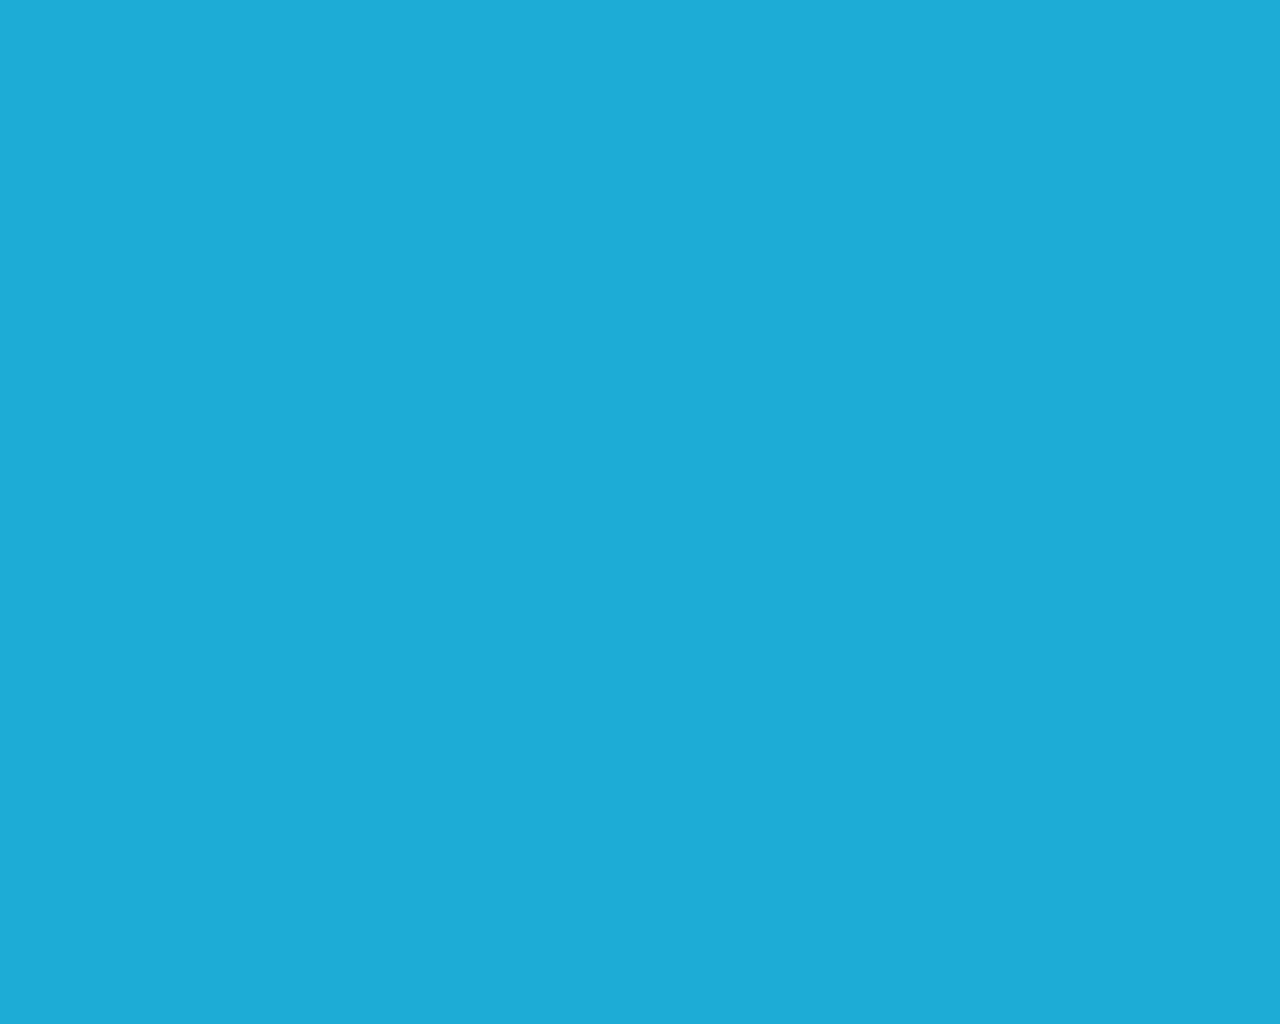 1280x1024 Bright Cerulean Solid Color Background